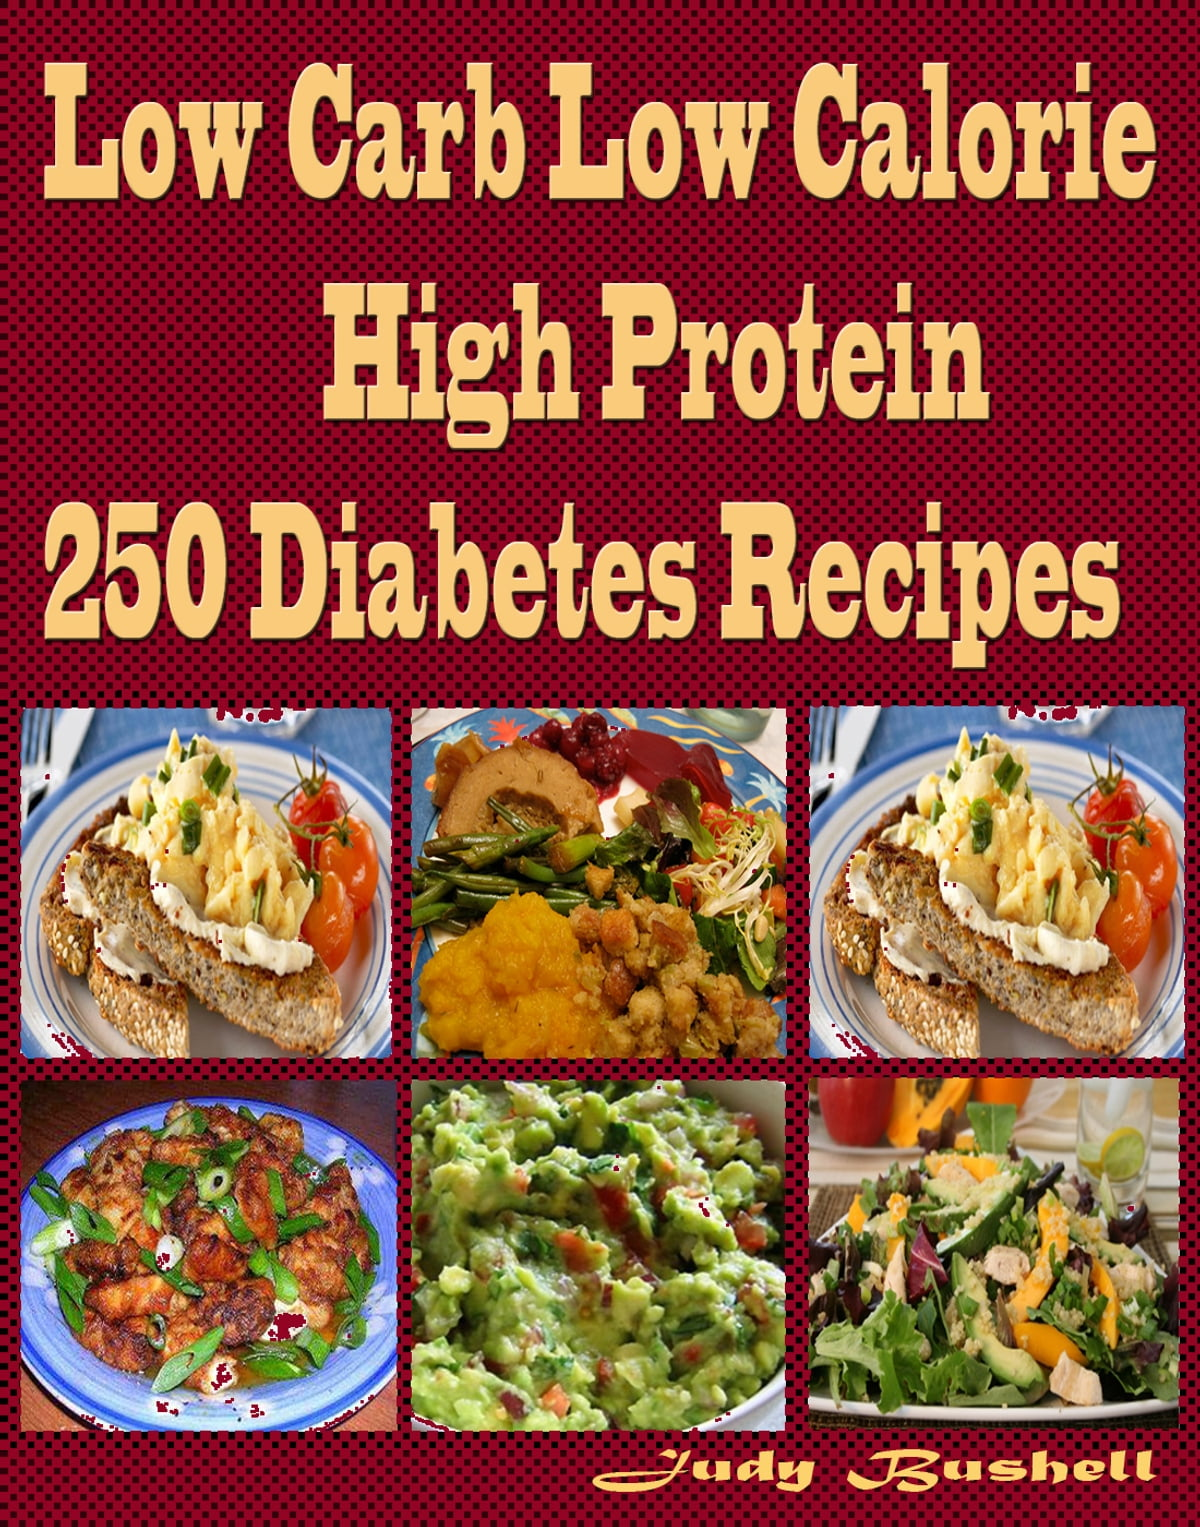 Low Carb Low Calorie High Protein 250 Diabetes Recipes Ebook By Judy Bushell Rakuten Kobo